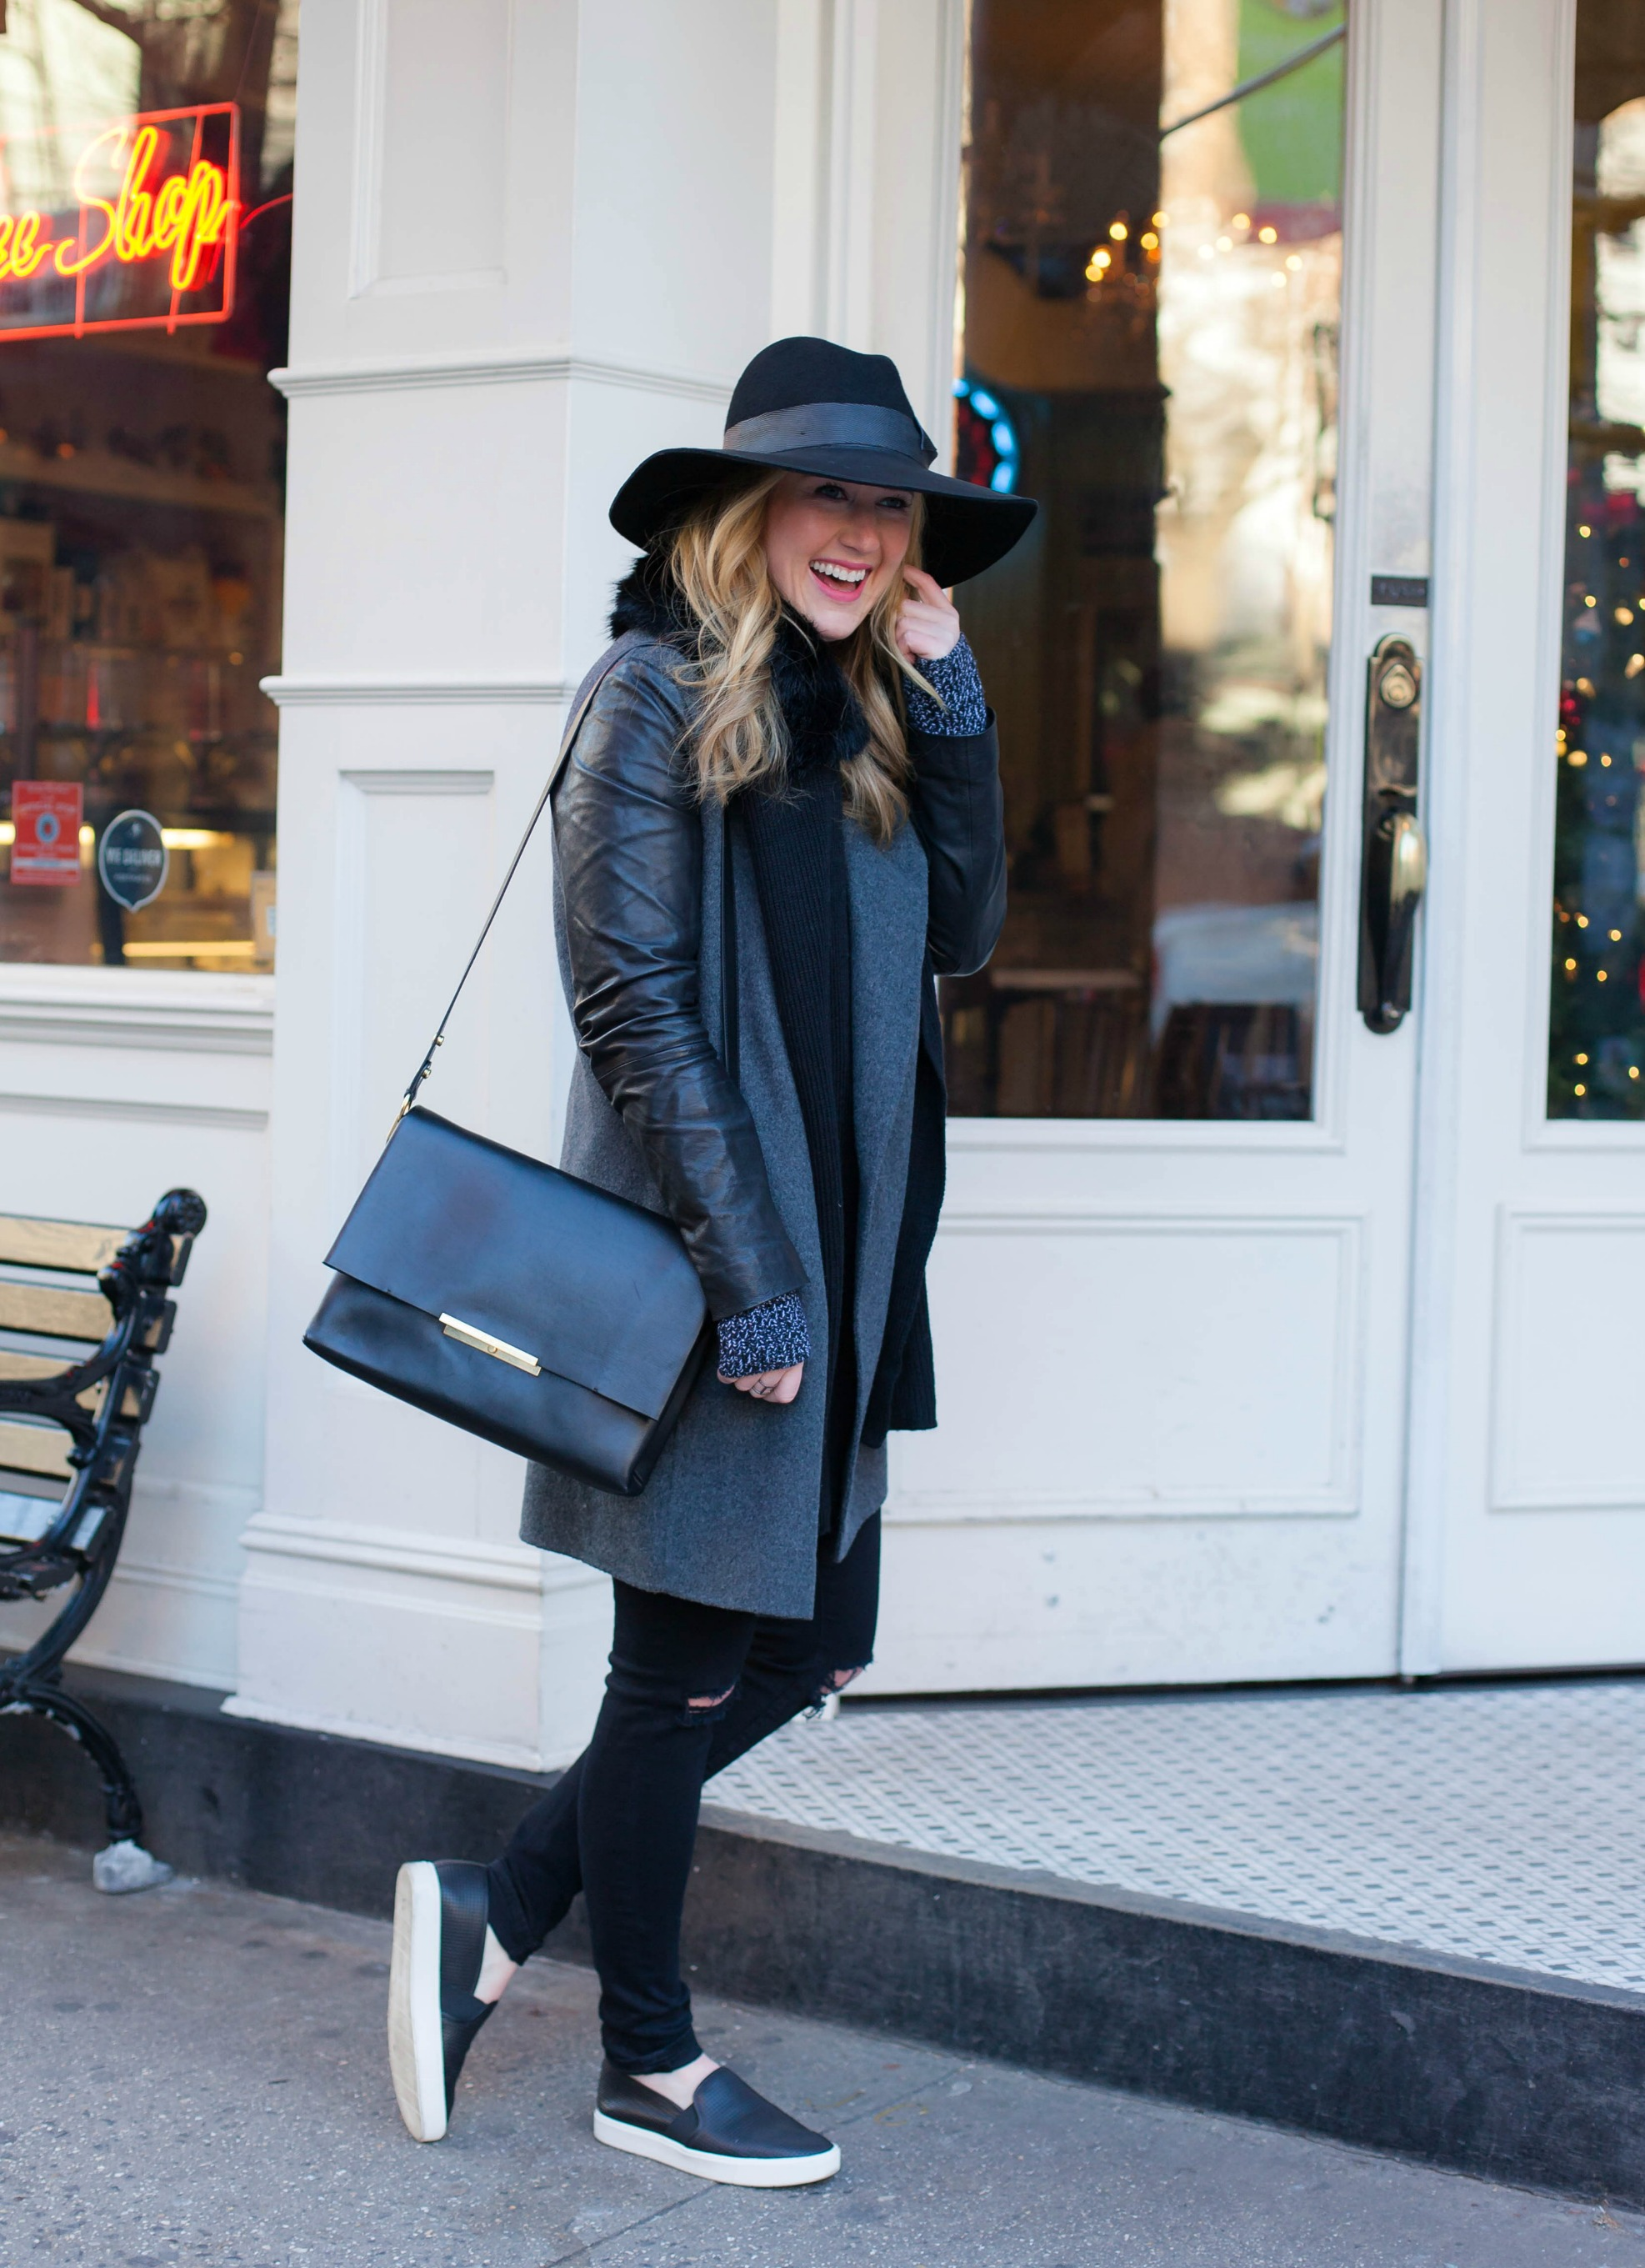 The Best Shoes for Fall & Winter | Vince Coat I My Favorite and Most Worn Shoes